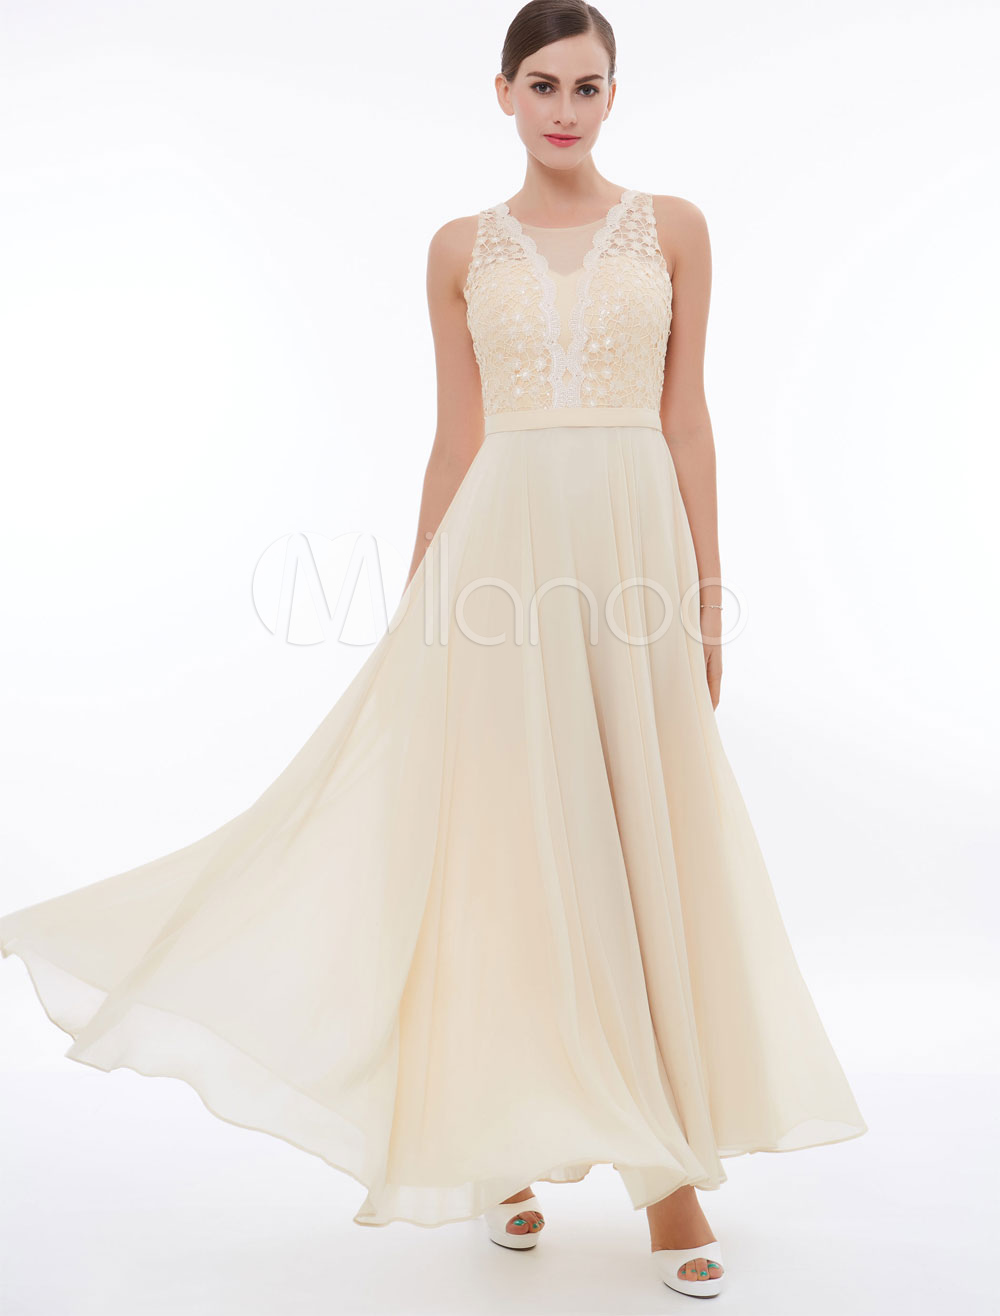 Buy Champagne Prom Dresses Long Chiffon Lace Beading Illusion Floor Length Formal Party Dress for $61.59 in Milanoo store